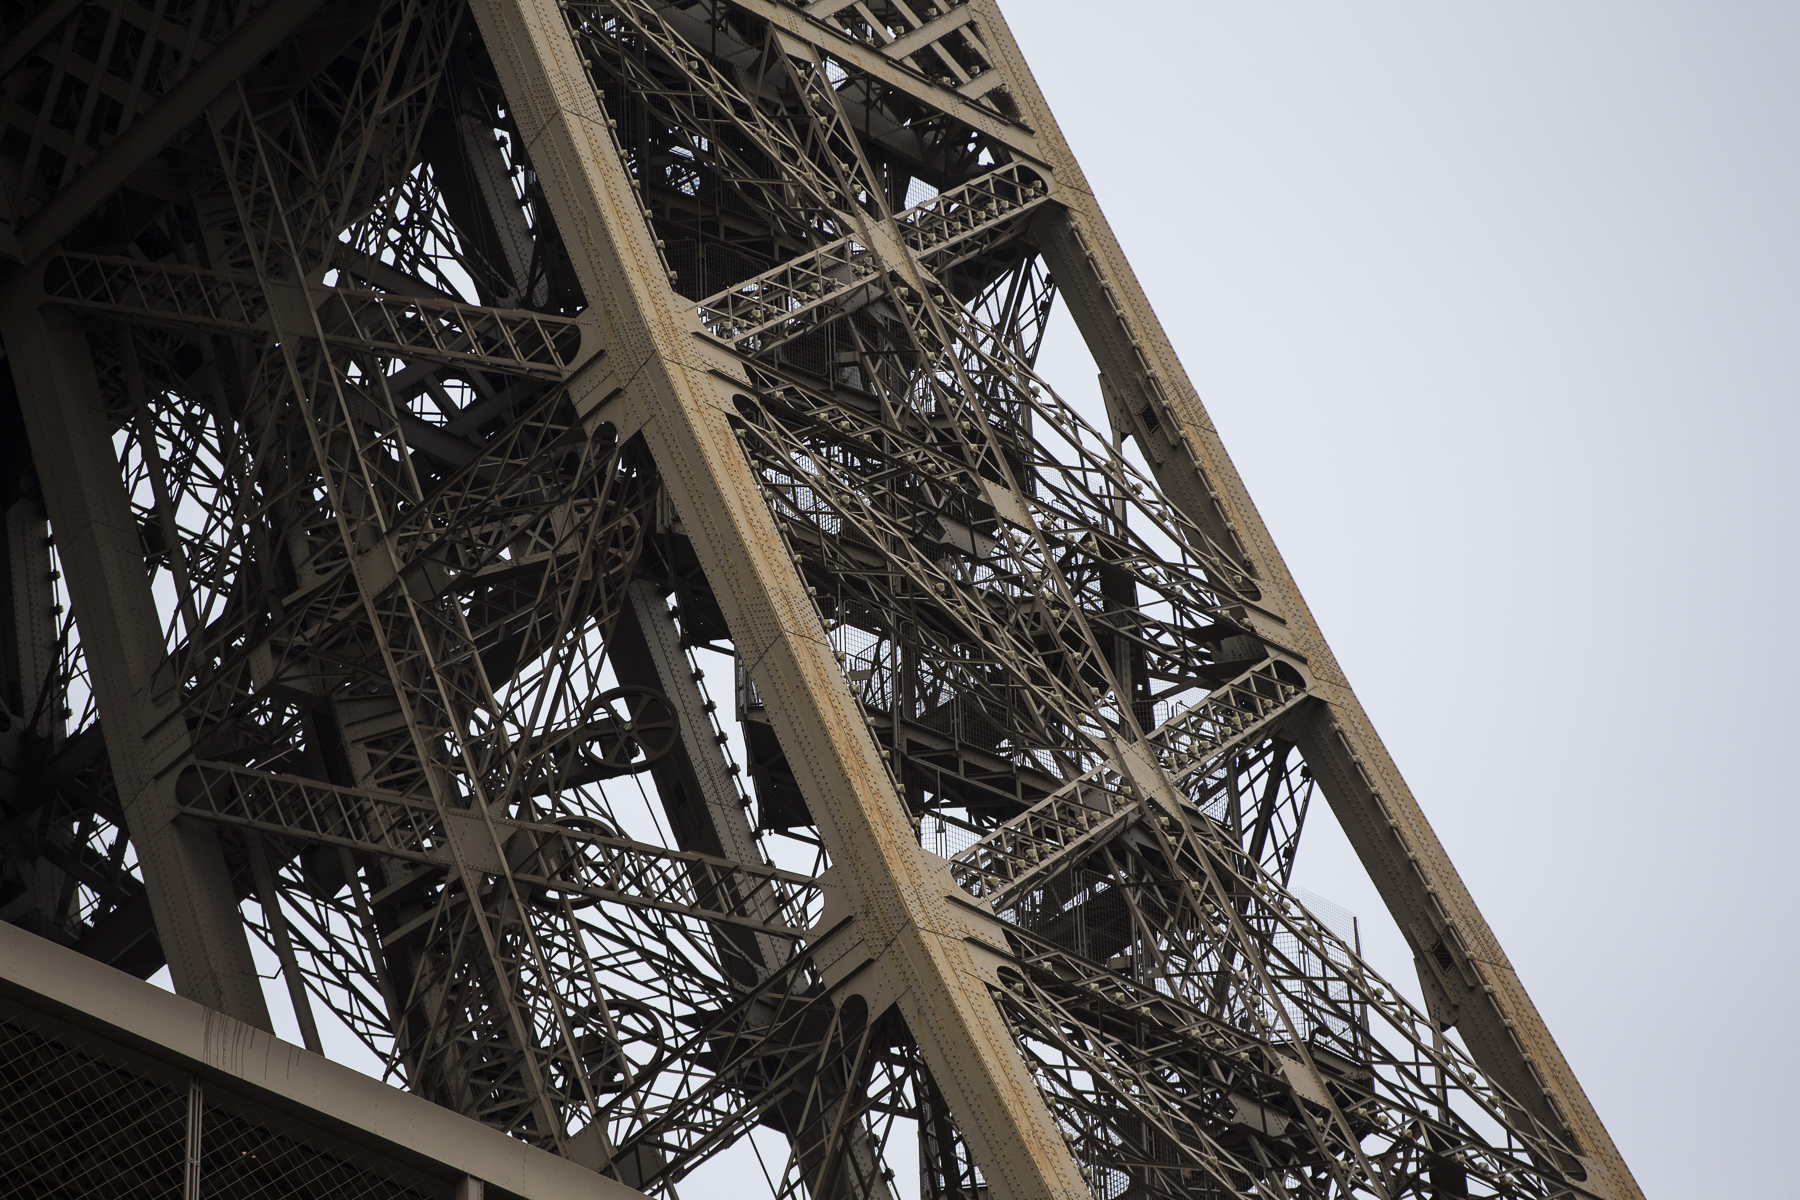 Eiffel Tower-7.jpg